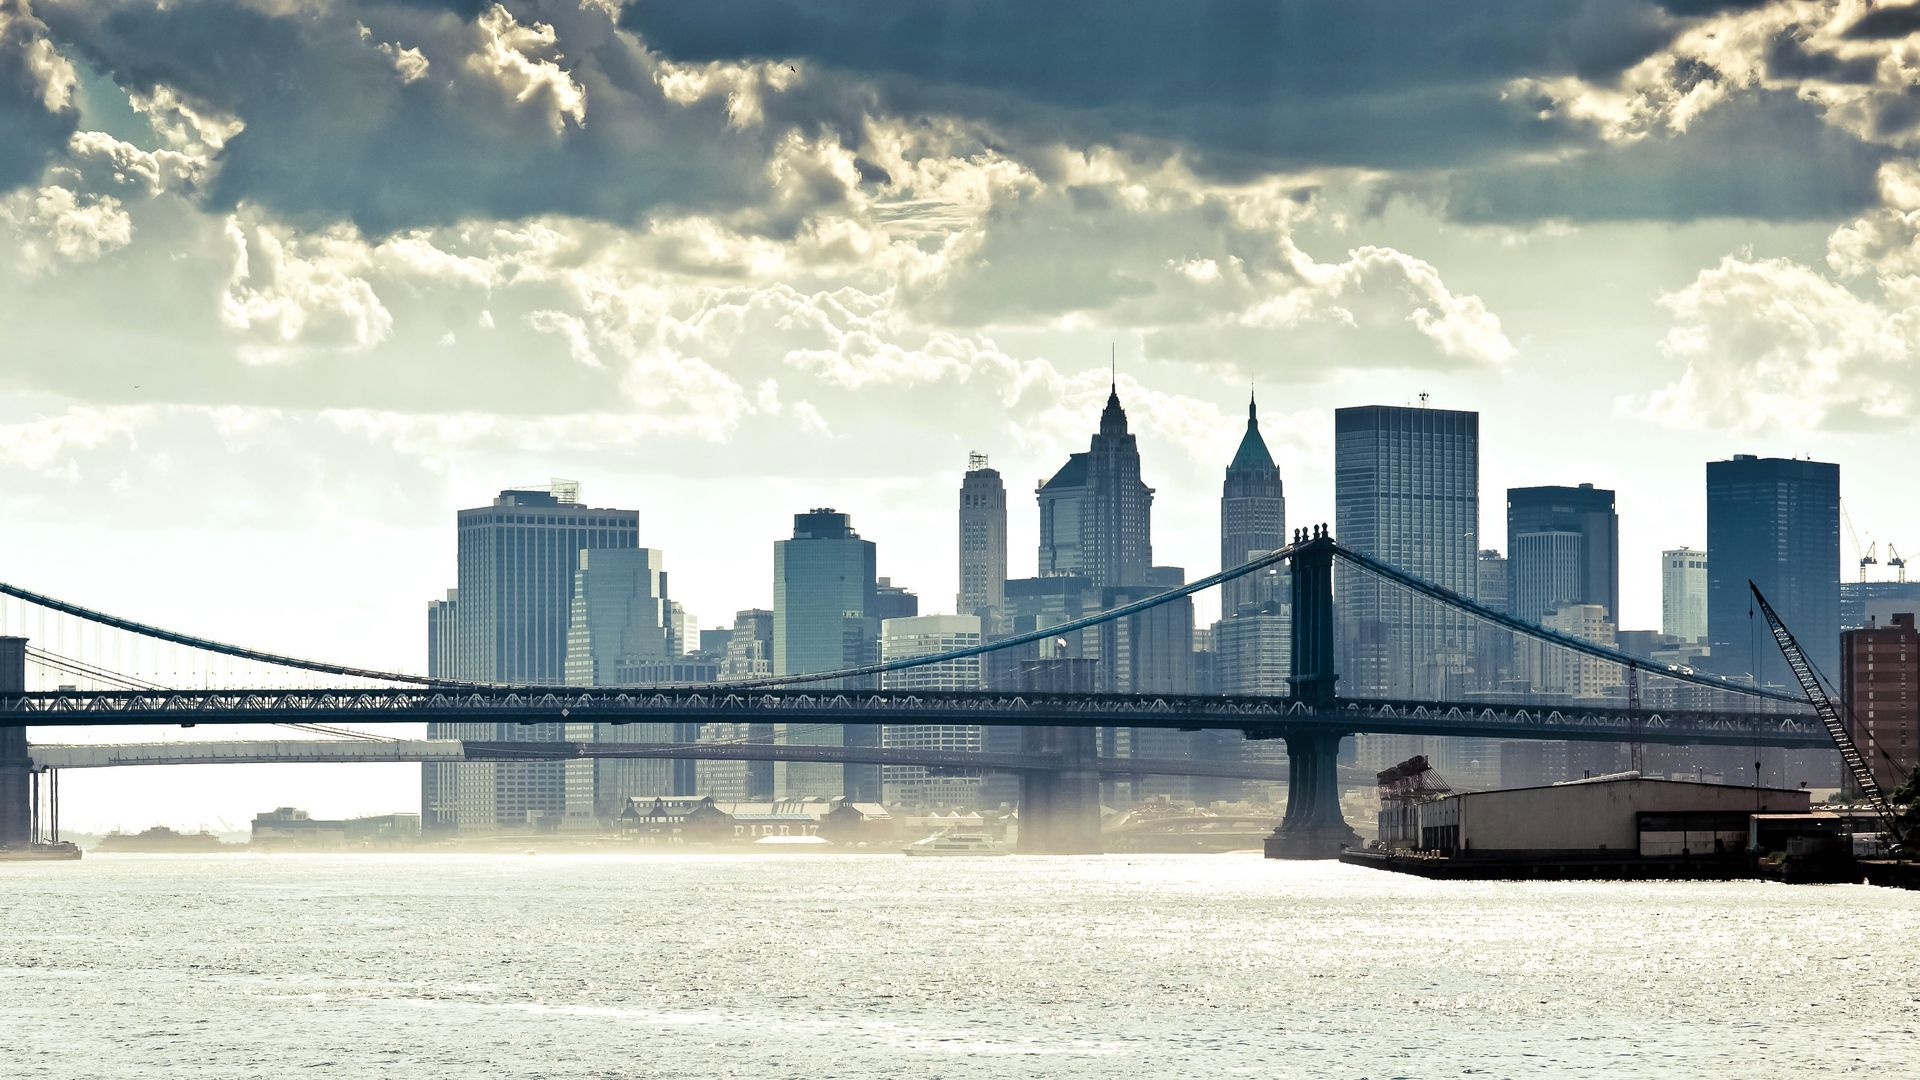 Nyc Skyline full hd wallpaper for laptop